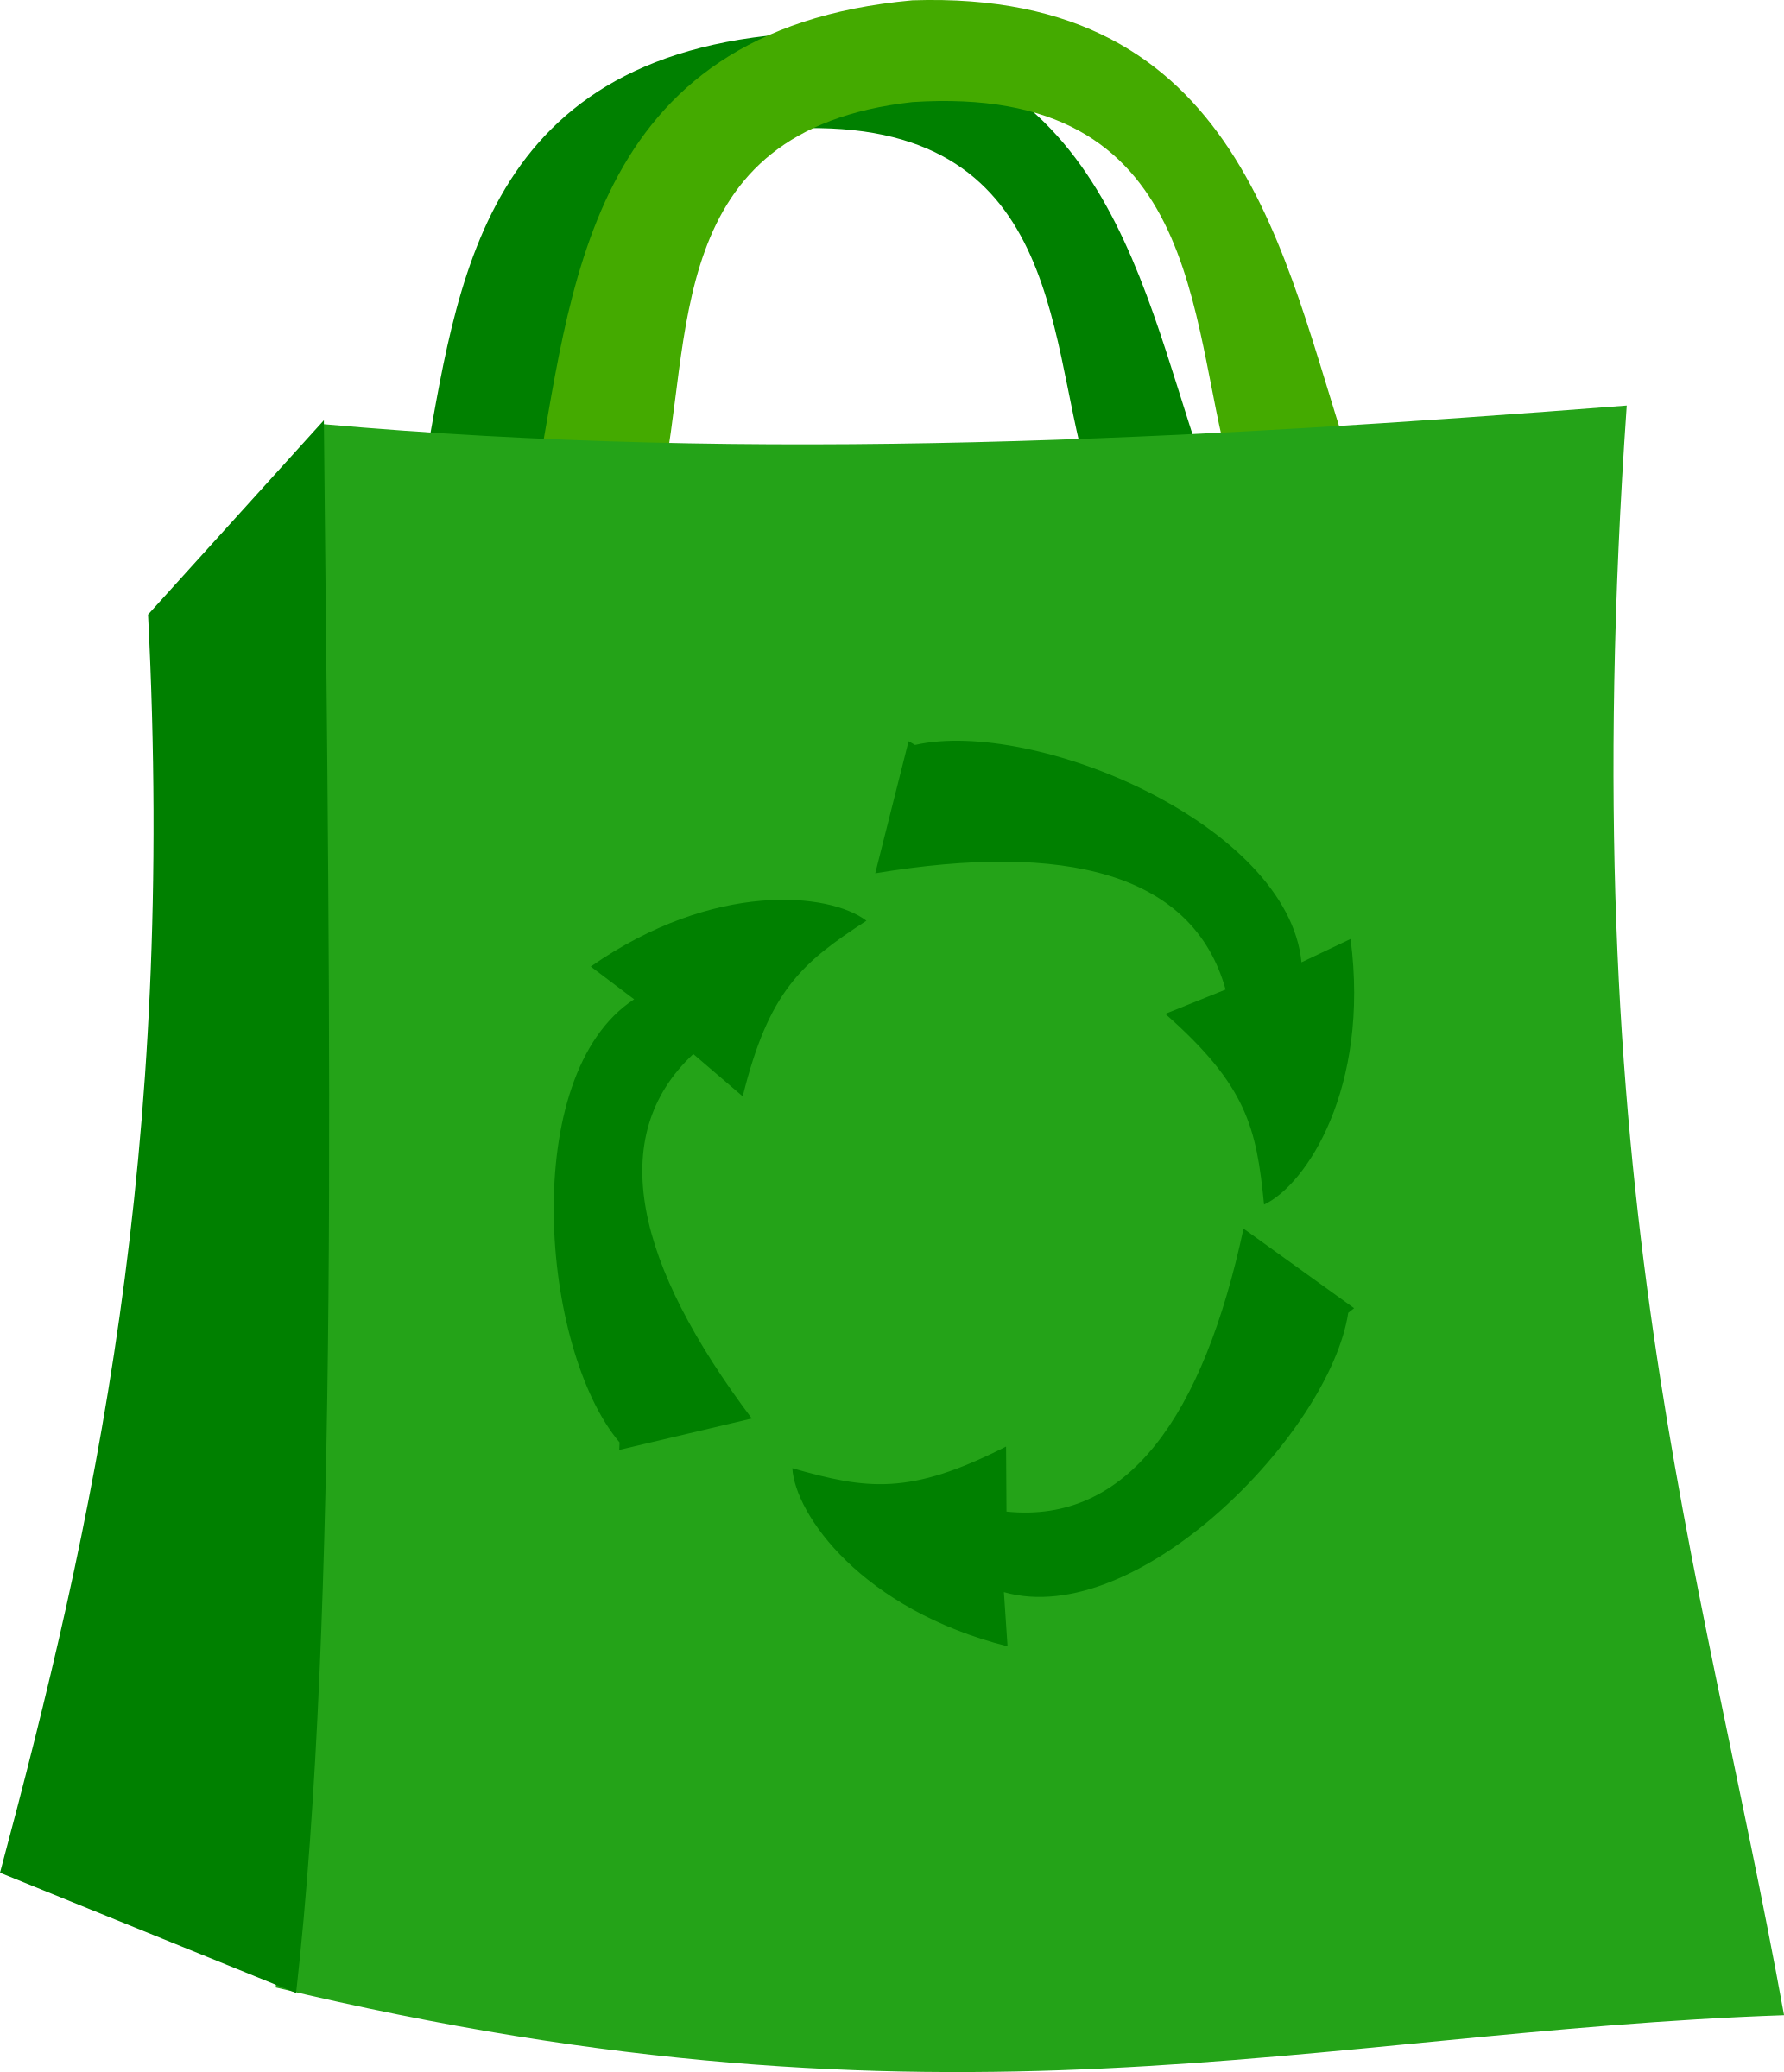 clip art Green shopping big image. Grocery clipart eco bag